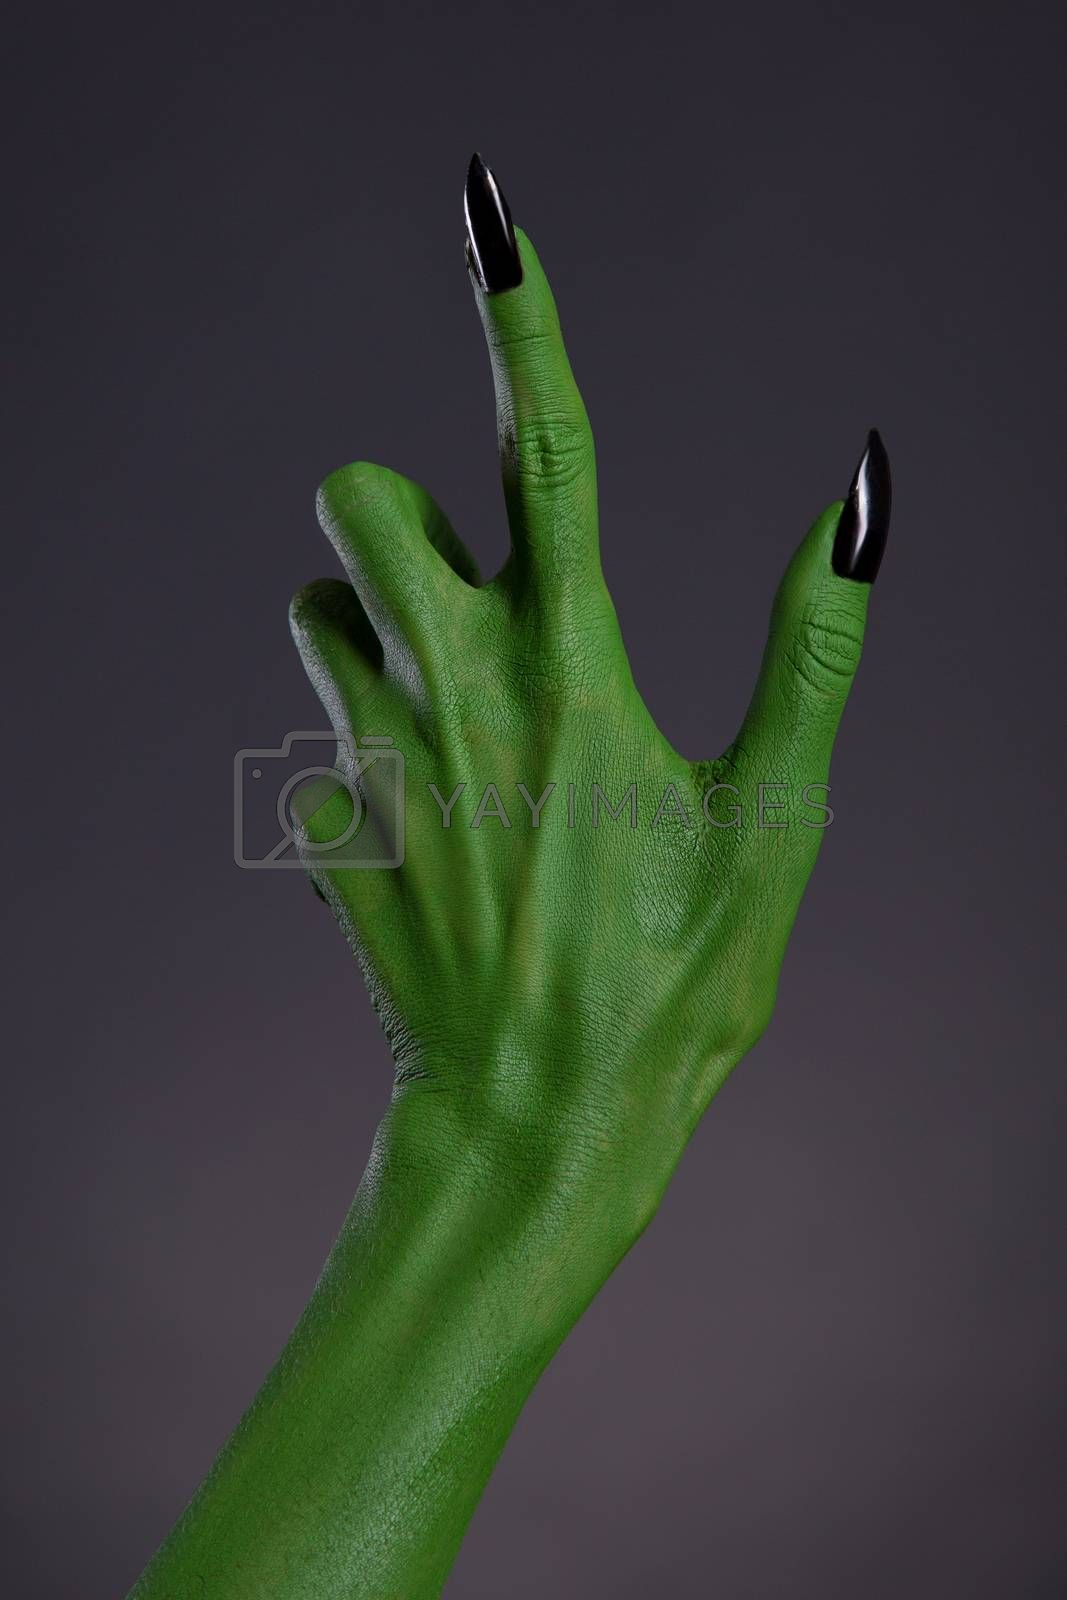 Green witch hand with black nails, Halloween theme, studio shot on black background